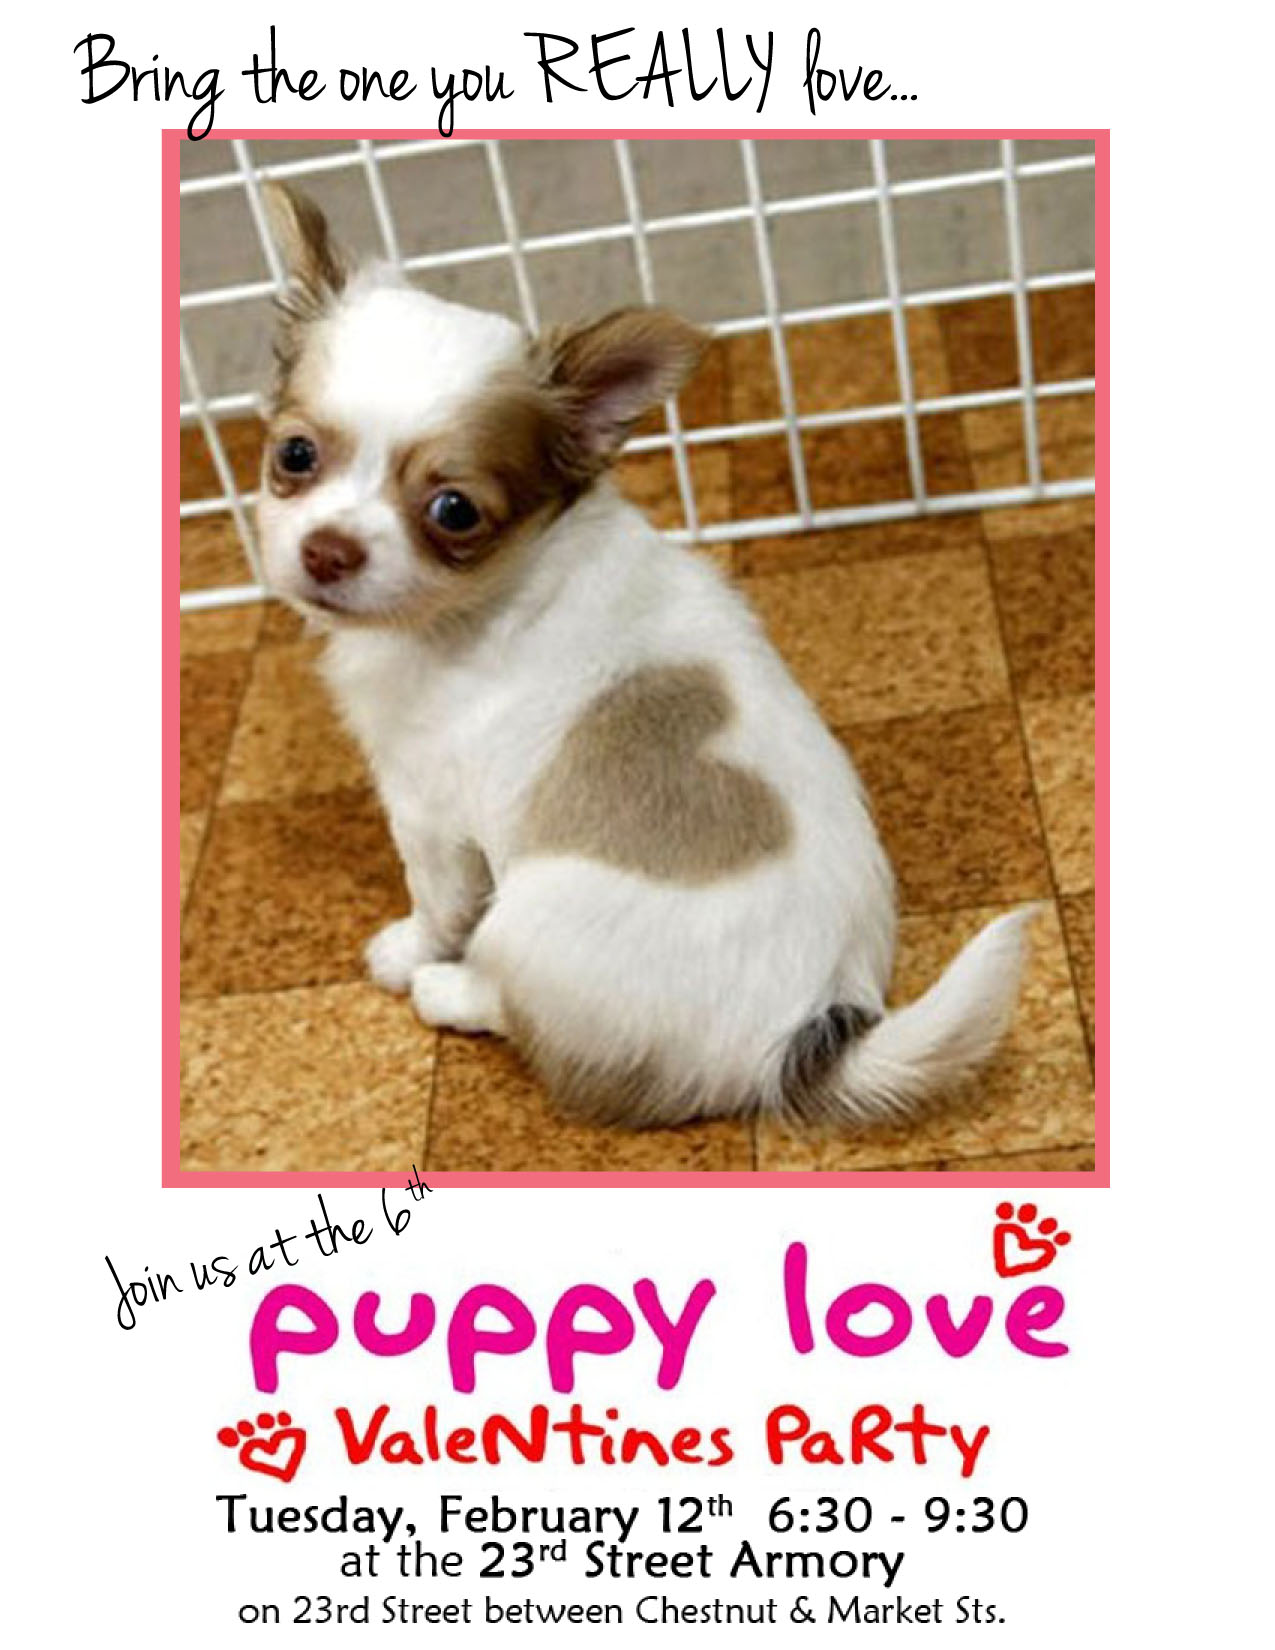 Celebrate Your Four Legged Friends At Puppy Love Valentines Party